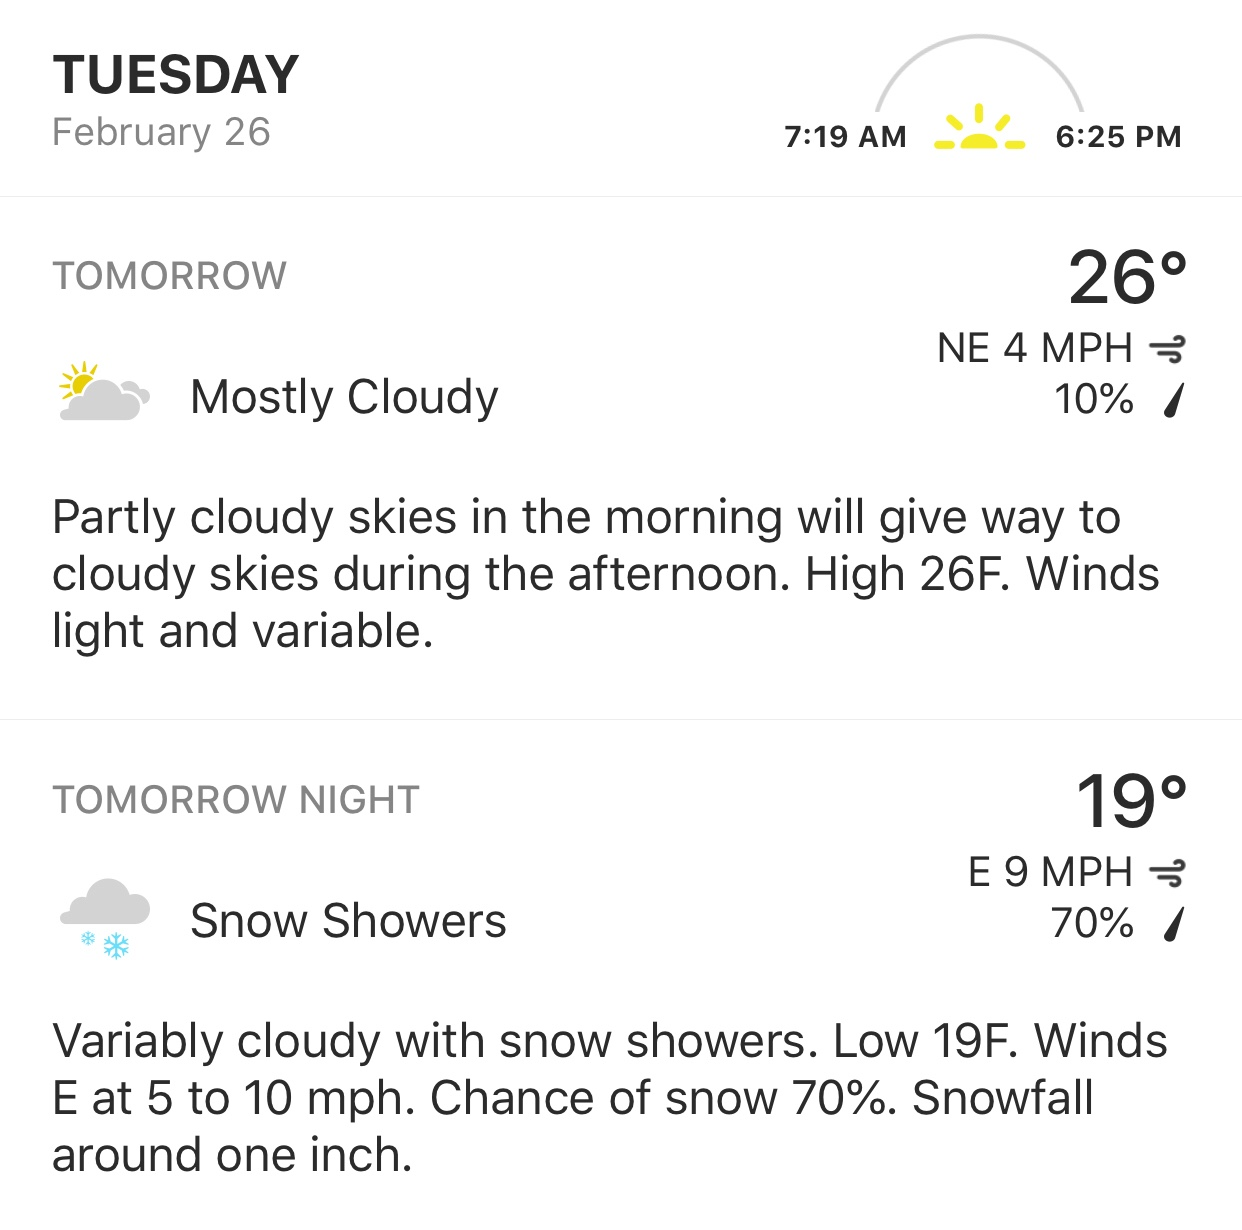 Weather for Tuesday February 26, 2019